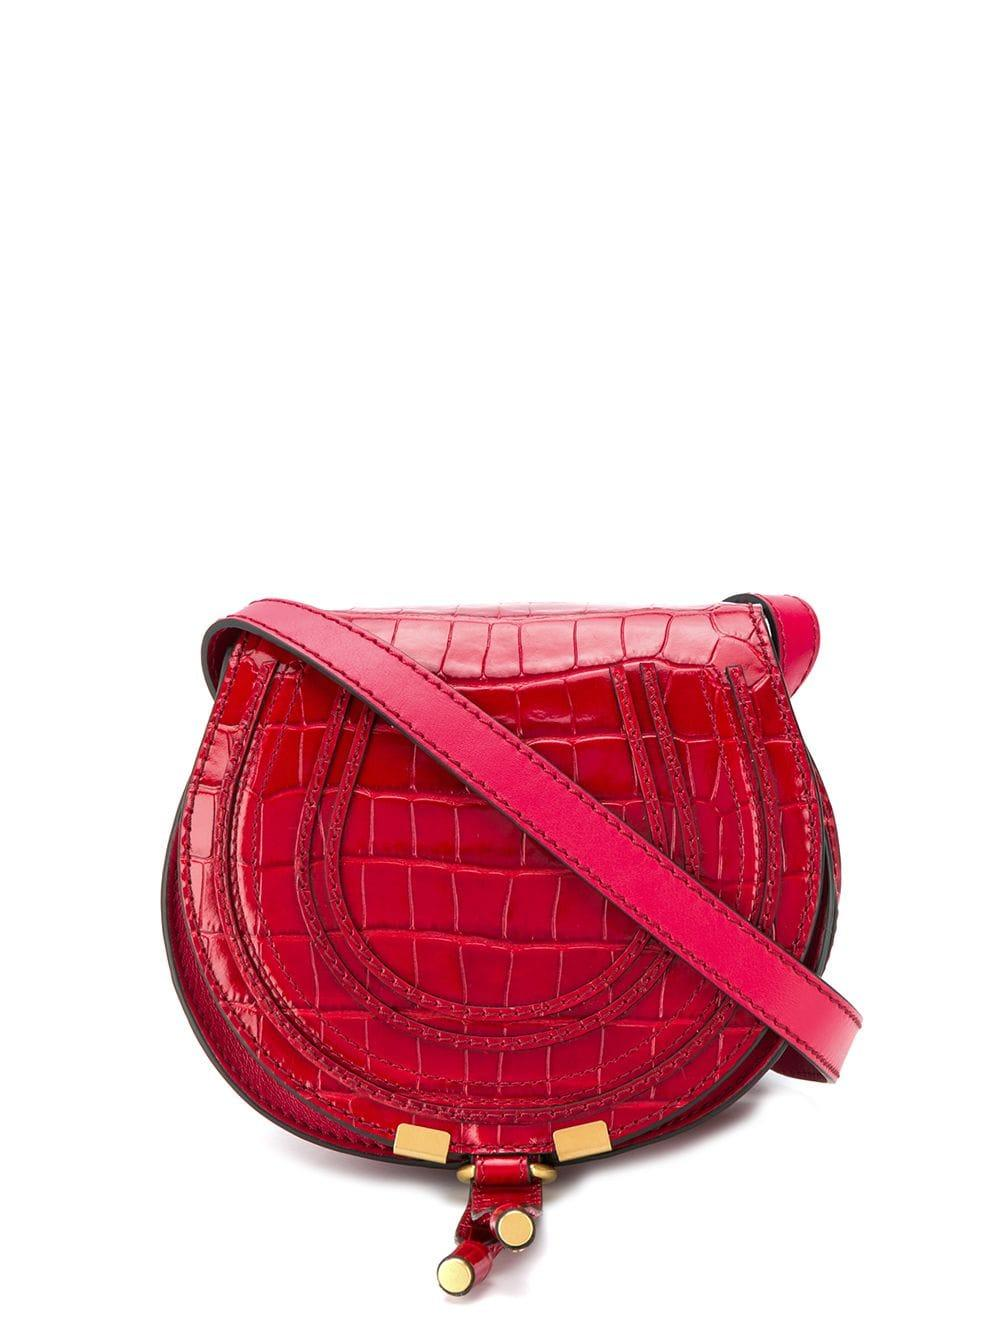 Marcie Small Croc Embroidery Bag